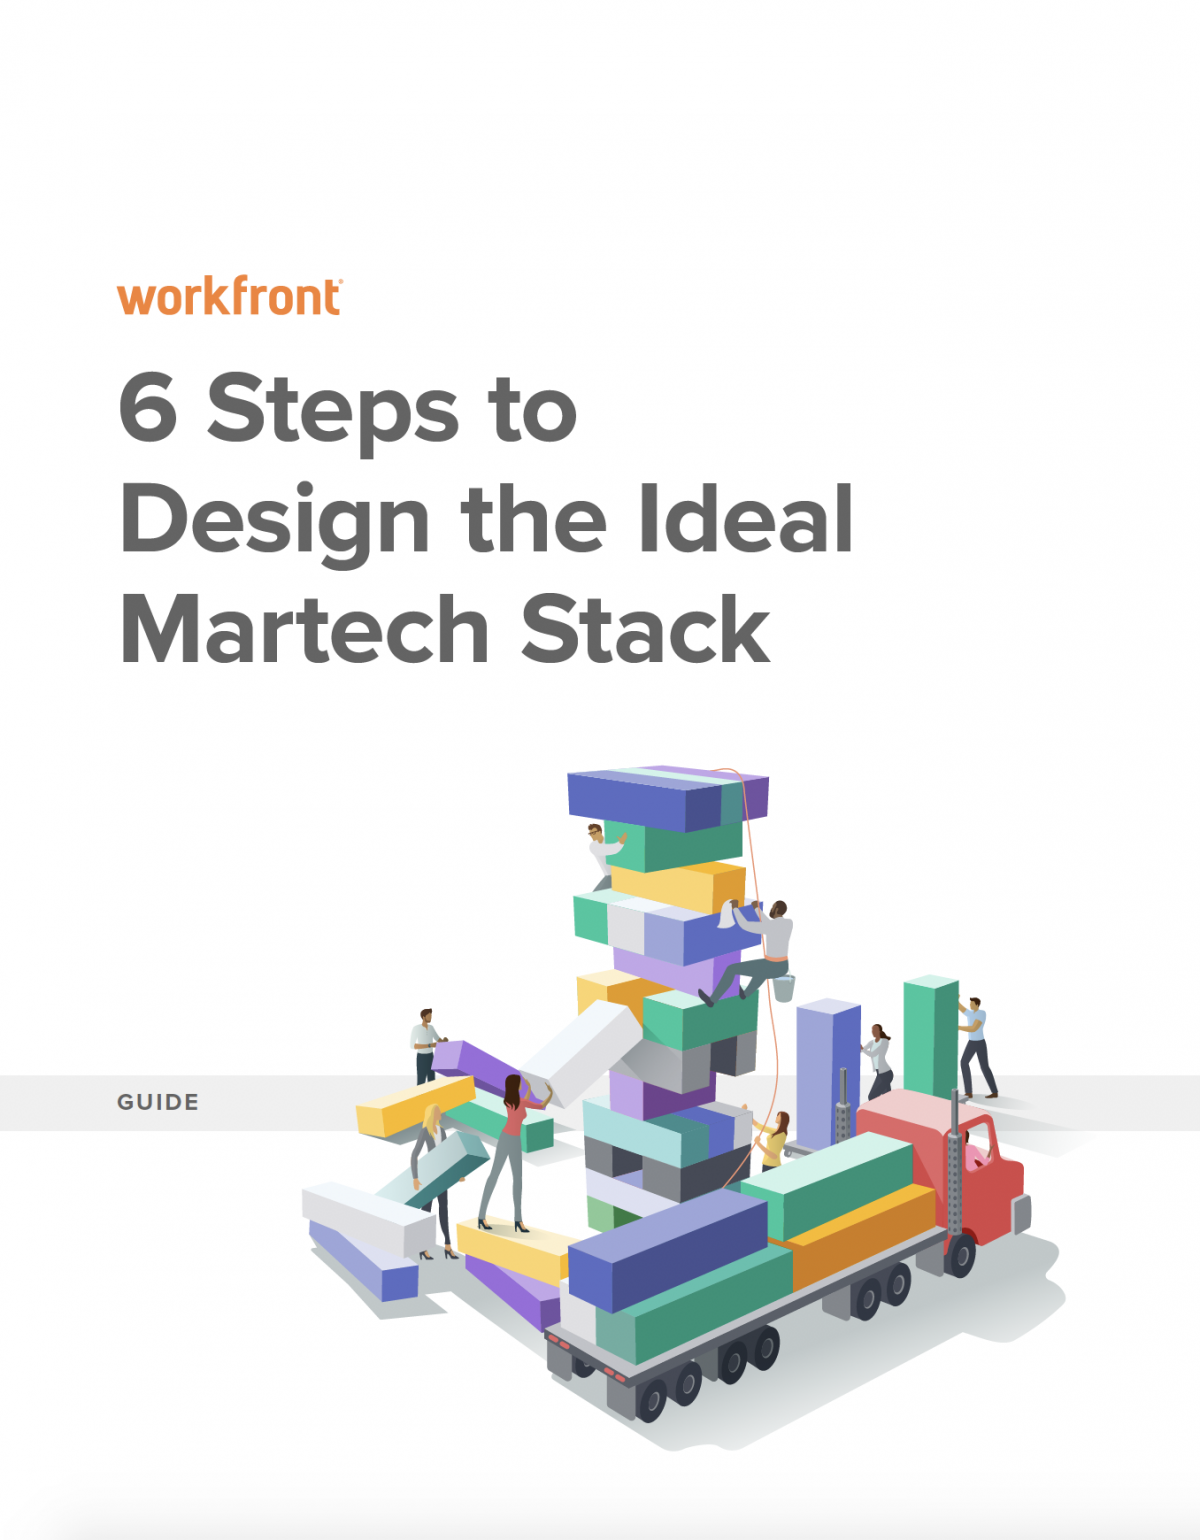 6 Steps to Design the Ideal Martech Stack